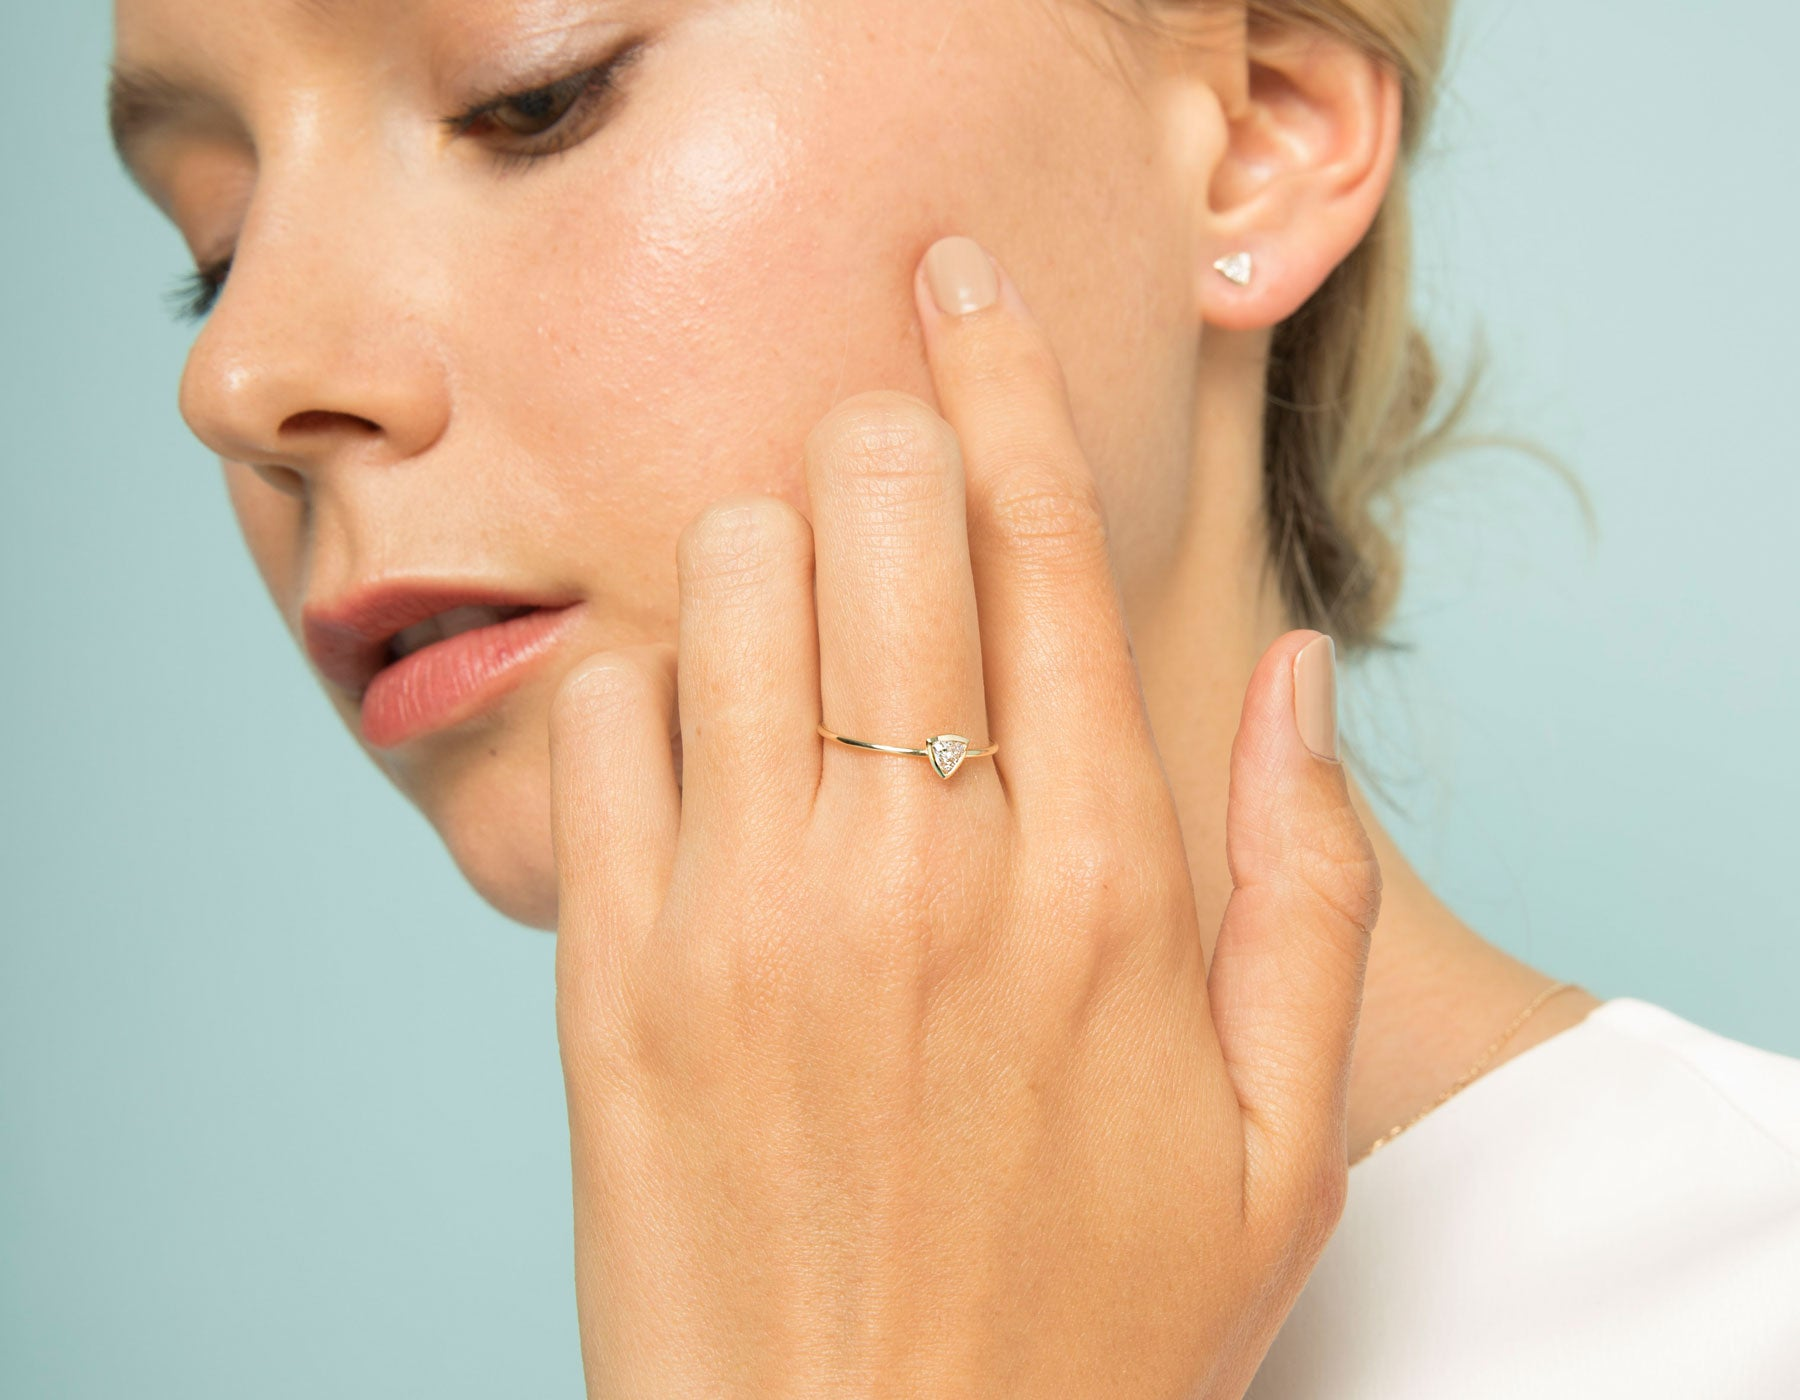 Model wearing dainty minimalist Trillion Diamond Bezel Ring by Vrai in 14k solid gold